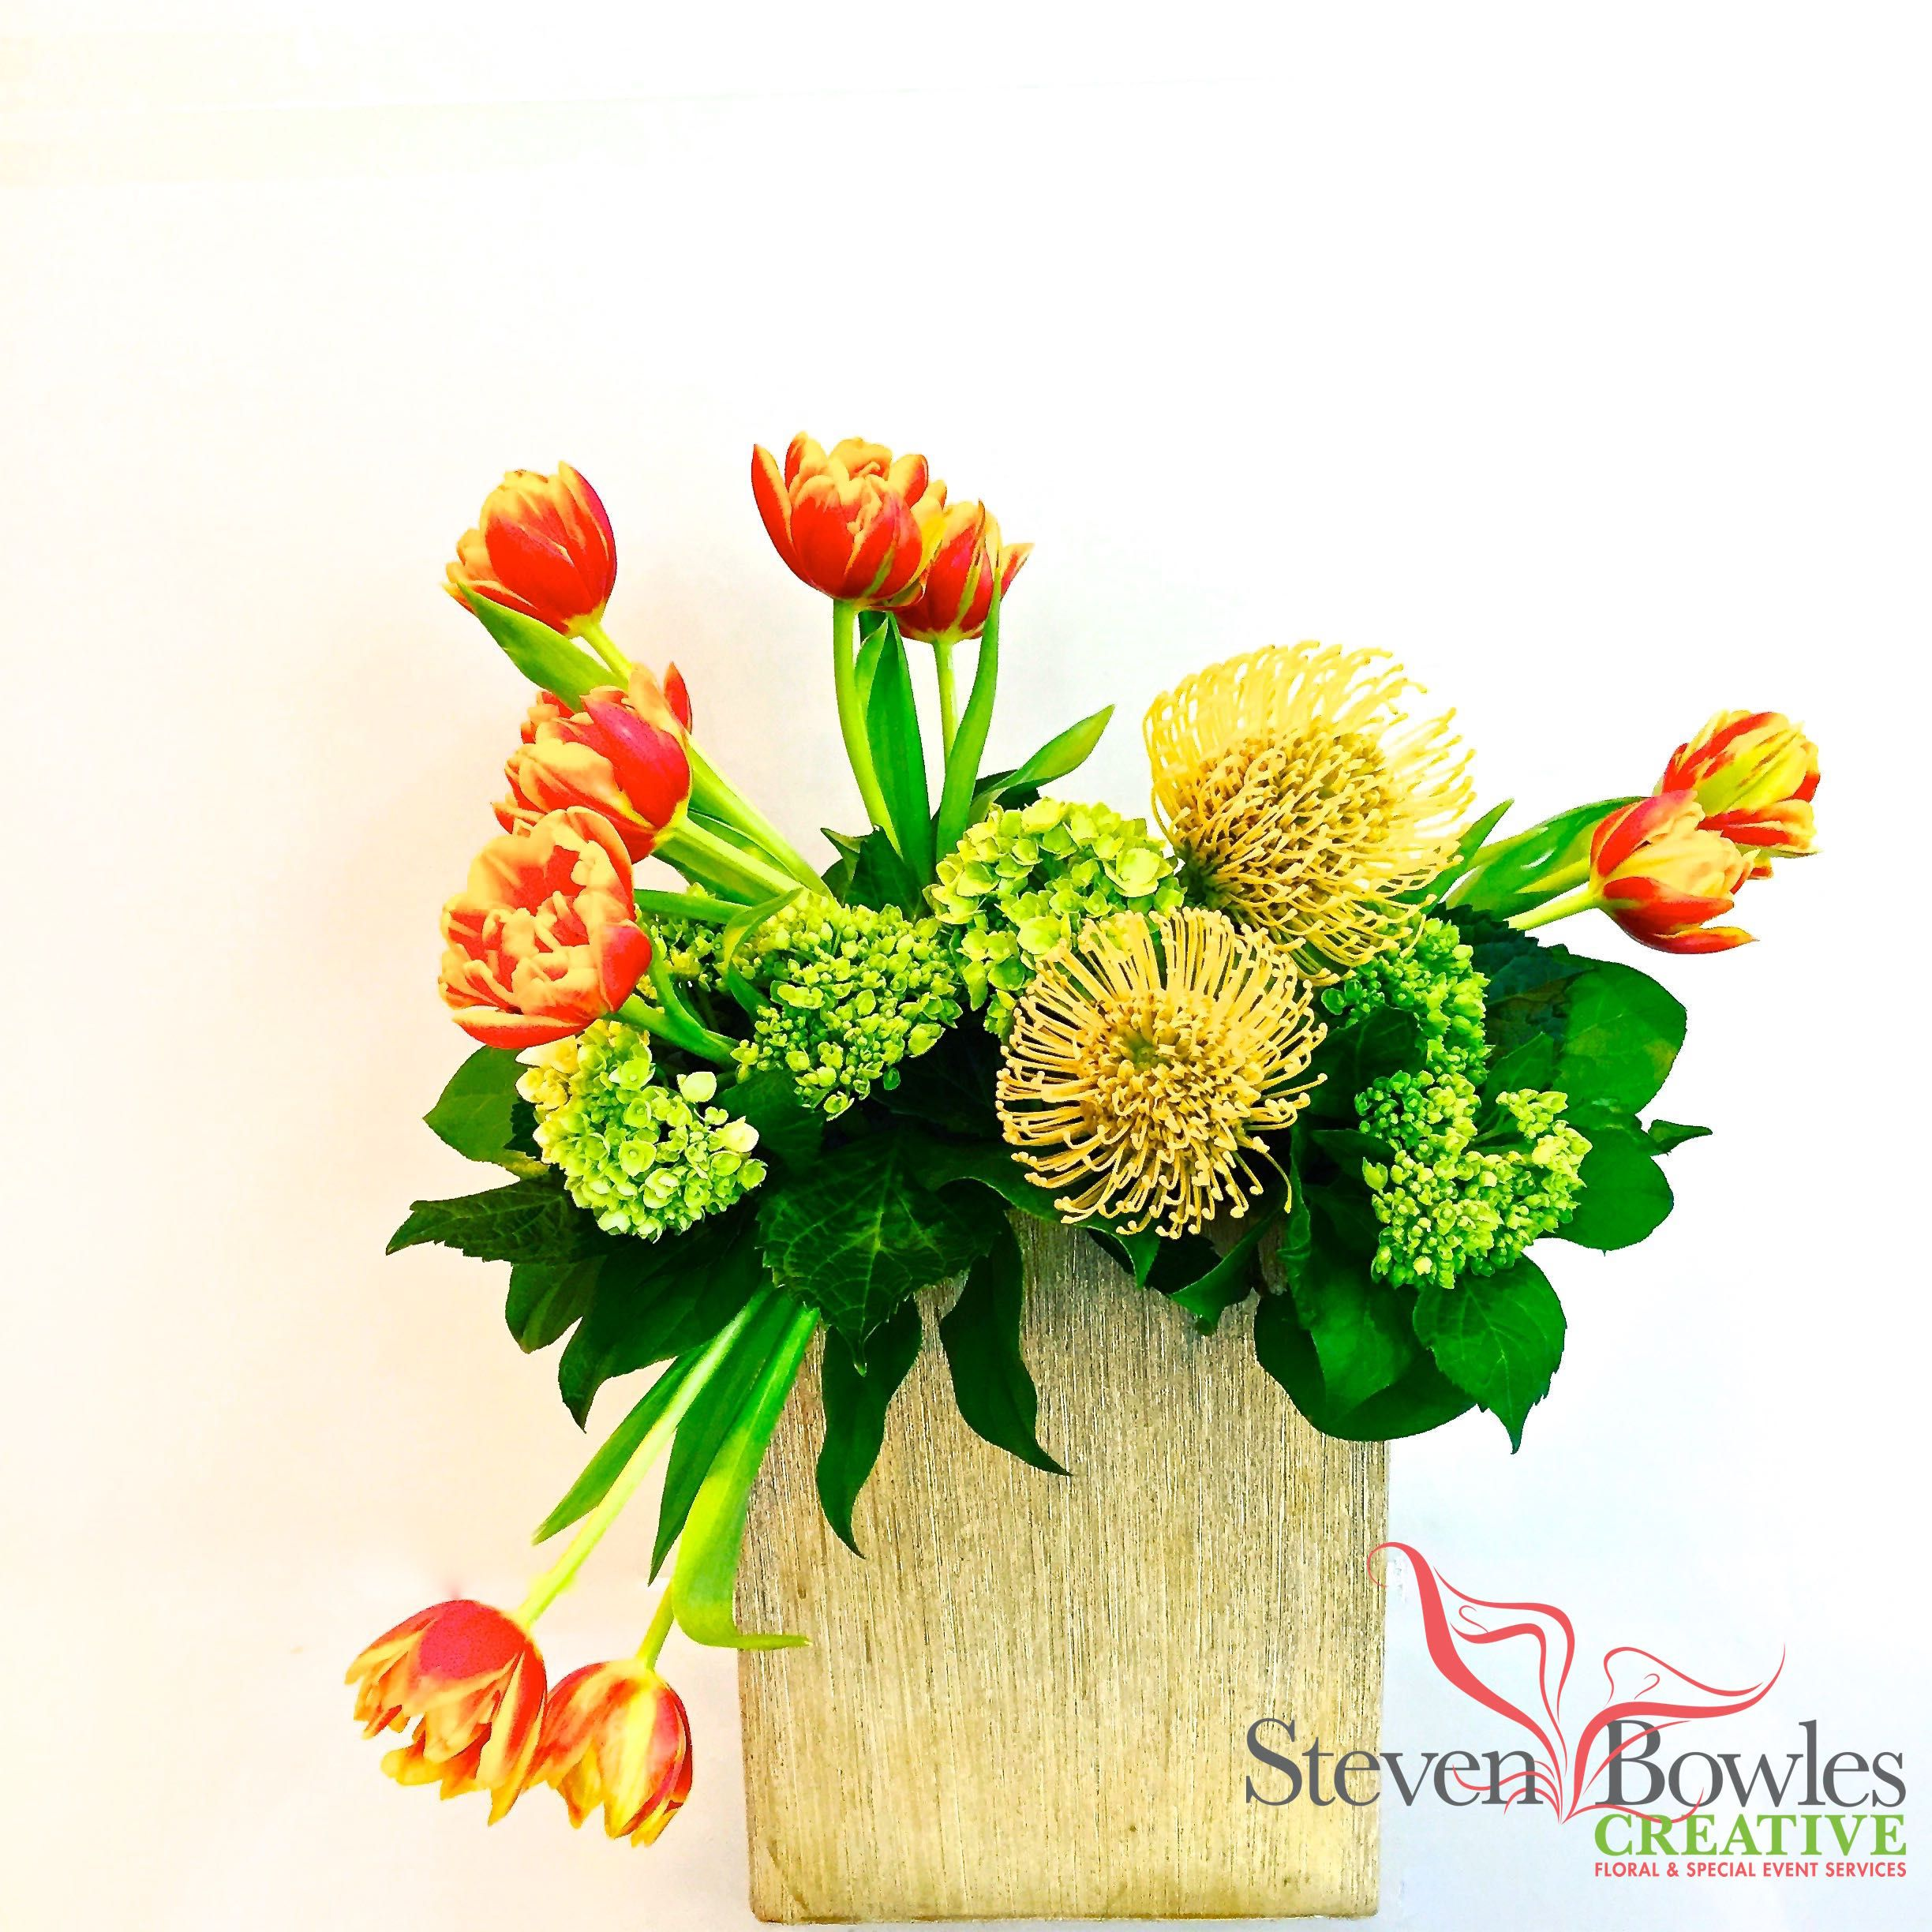 Modern Tulip floral design created by Steven Bowles Creative Event